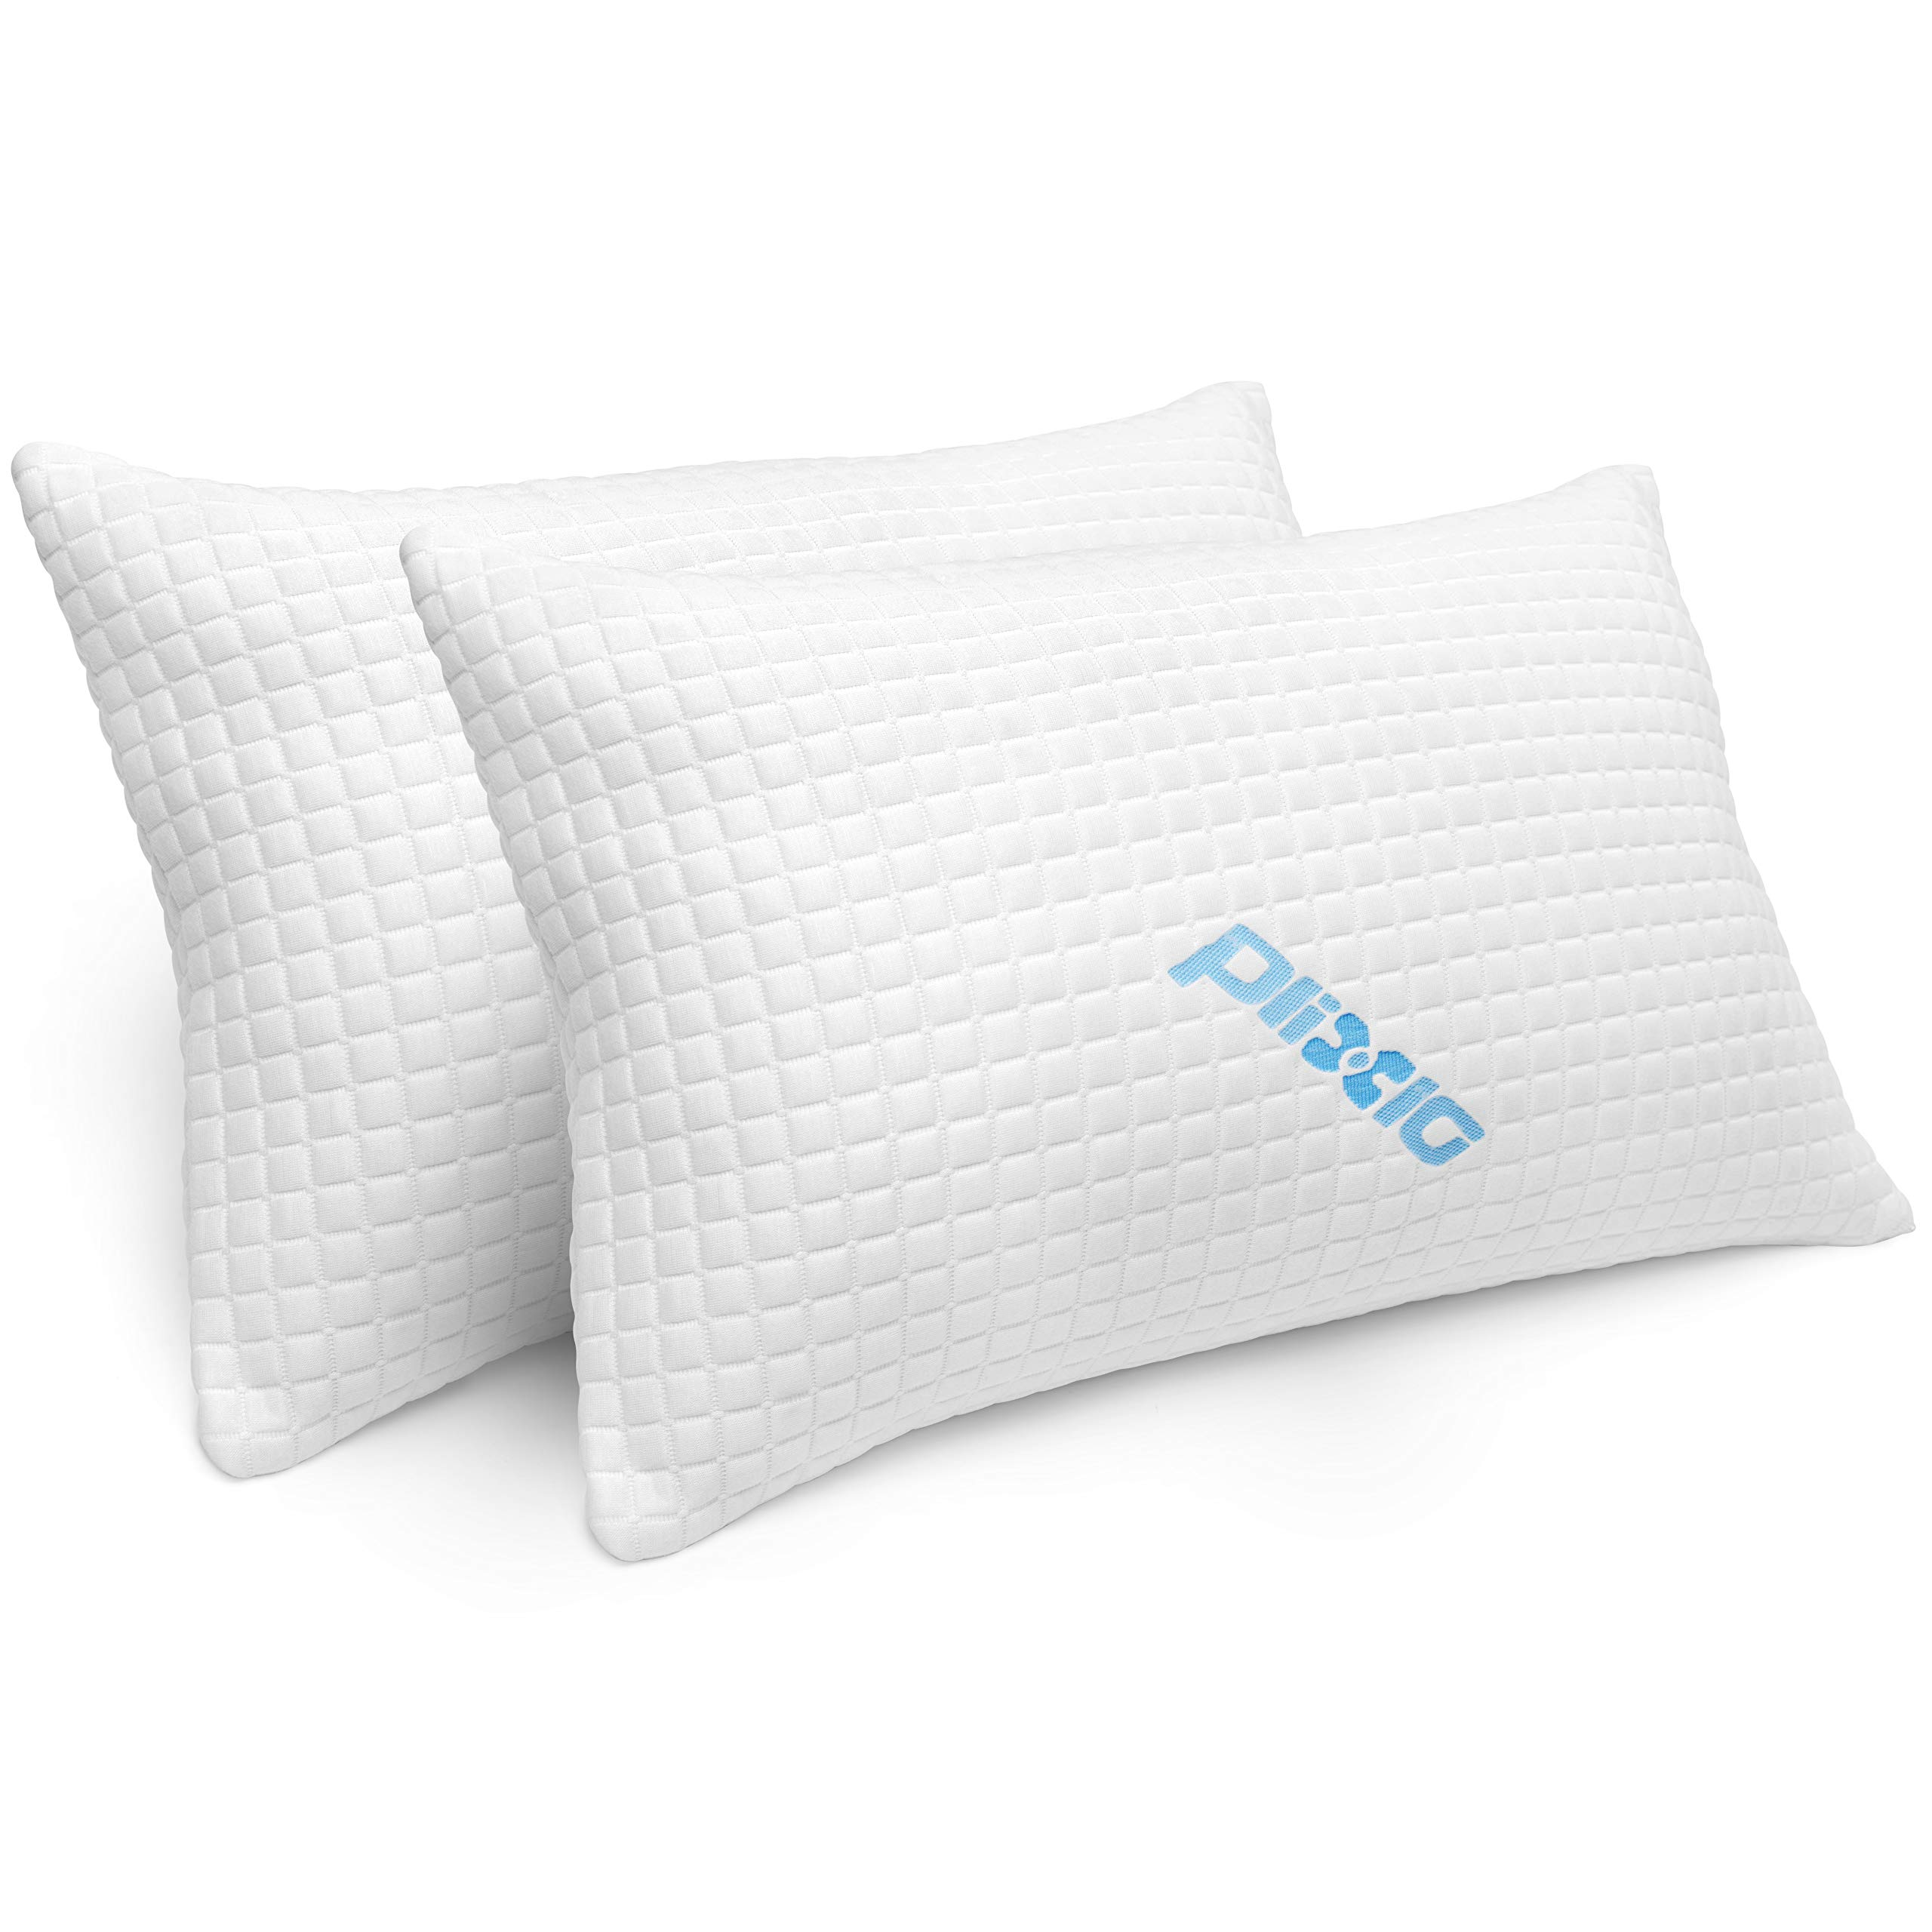 2 Pack Shredded Memory Foam Bed Pillows for Sleeping - Bamboo Cooling Hypoallergenic Sleep Pillow for Back and Side Sleeper - Queen Size by Plixio